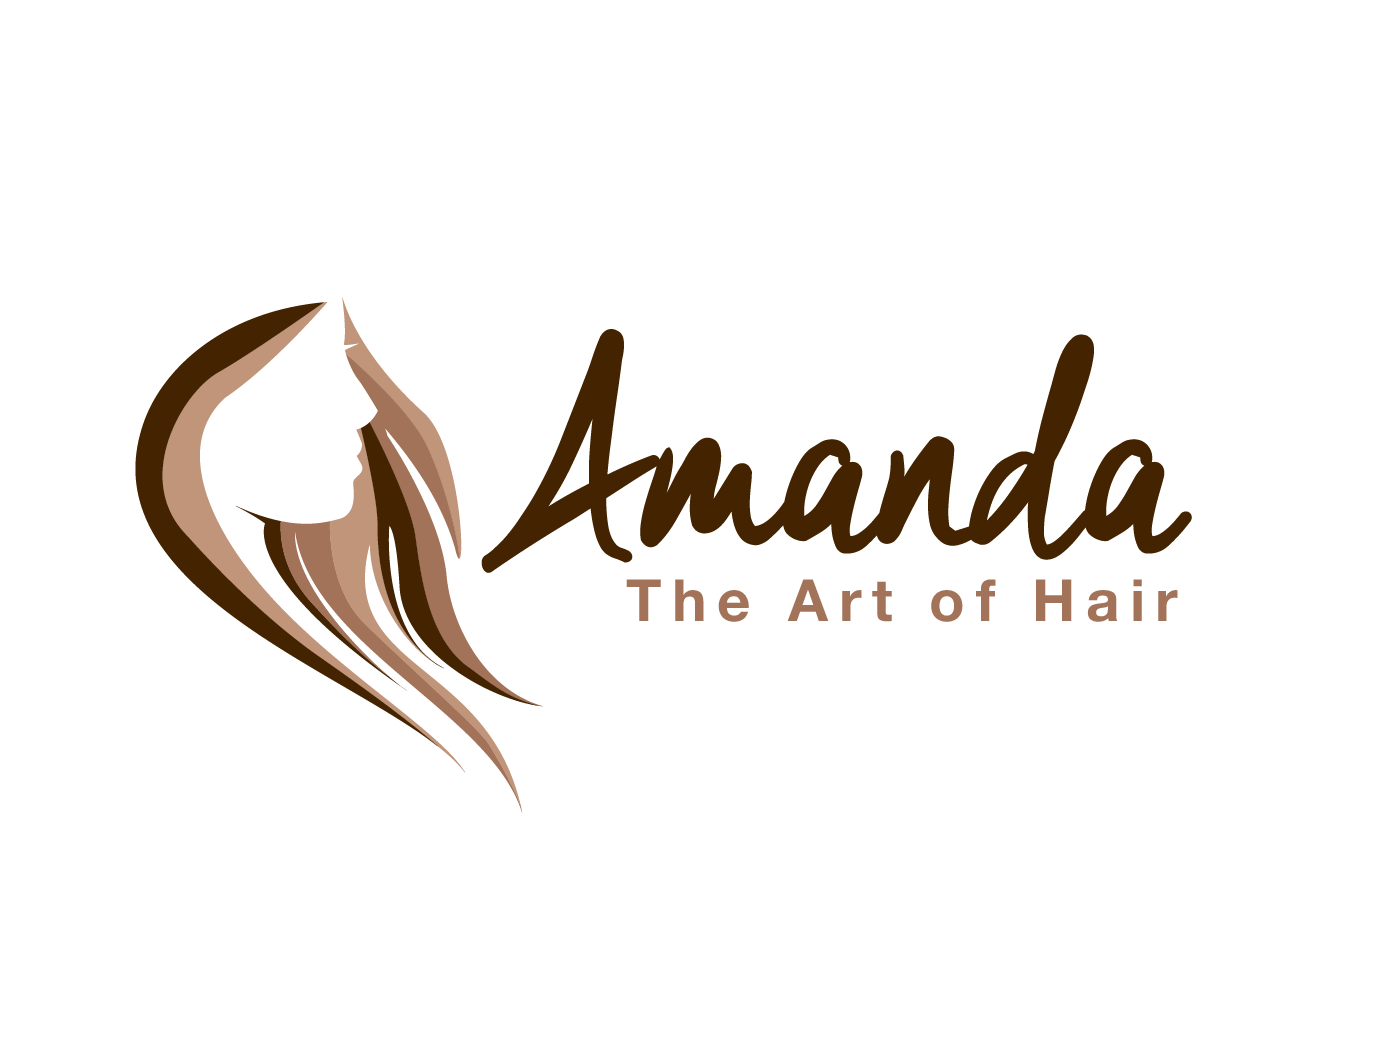 Amanda the Art of Hair Logo and Images